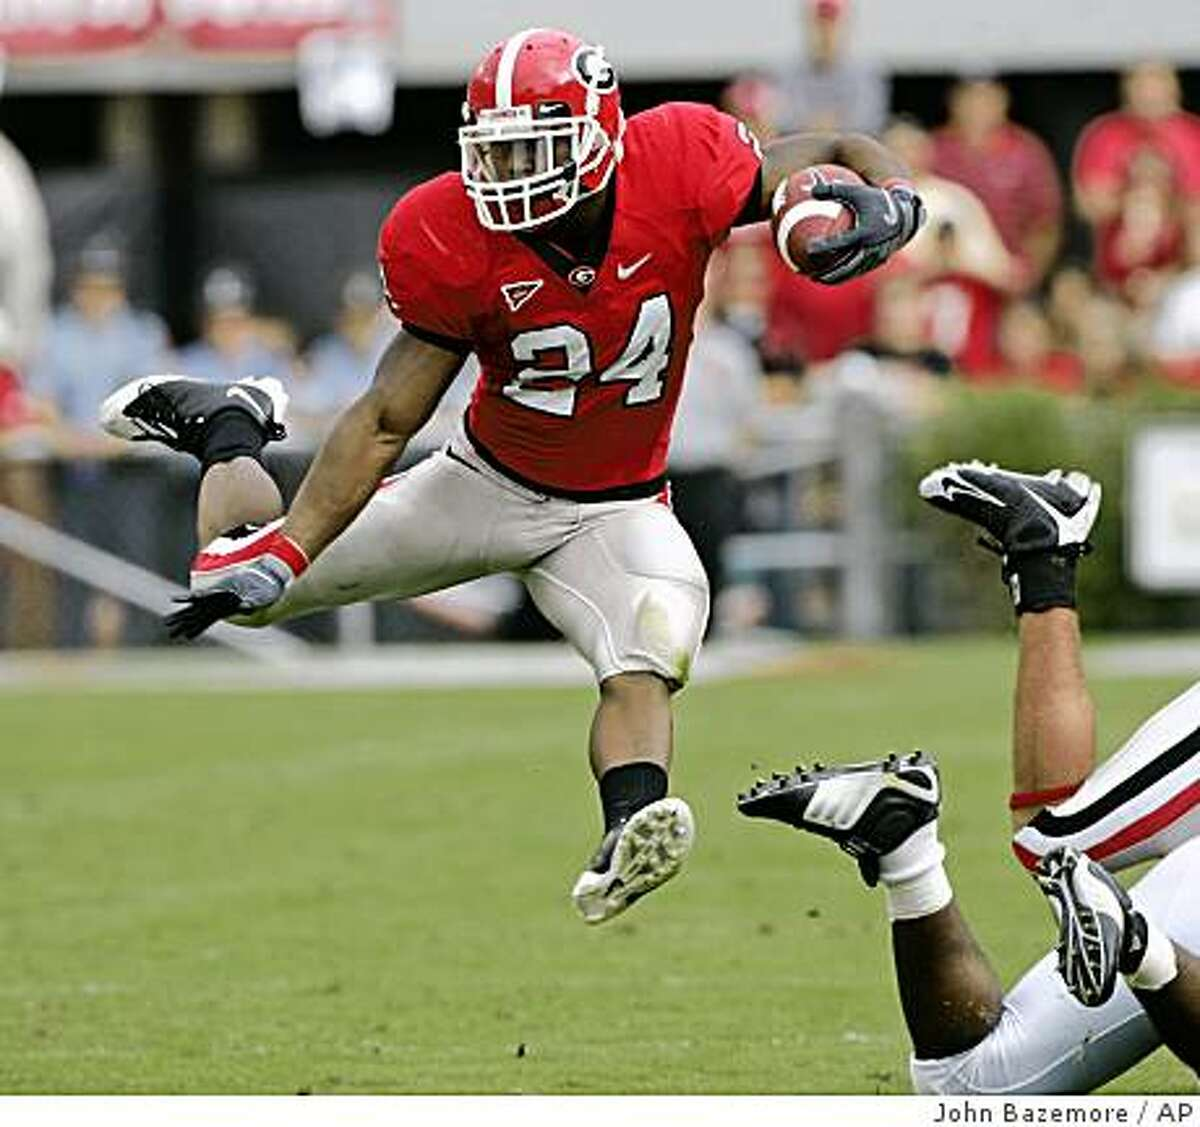 ** FOR USE AS DESIRED WITH NFL DRAFT STORIES ** FILE - In this Oct. 11, 2008 file photo, Georgia running back Knowshon Moreno leaps during a run in the first quarter of an NCAA college football game against Tennessee in Athens, Ga. Moreno is a top prospect in the 2009 NFL Draft.(AP Photo/John Bazemore, File)